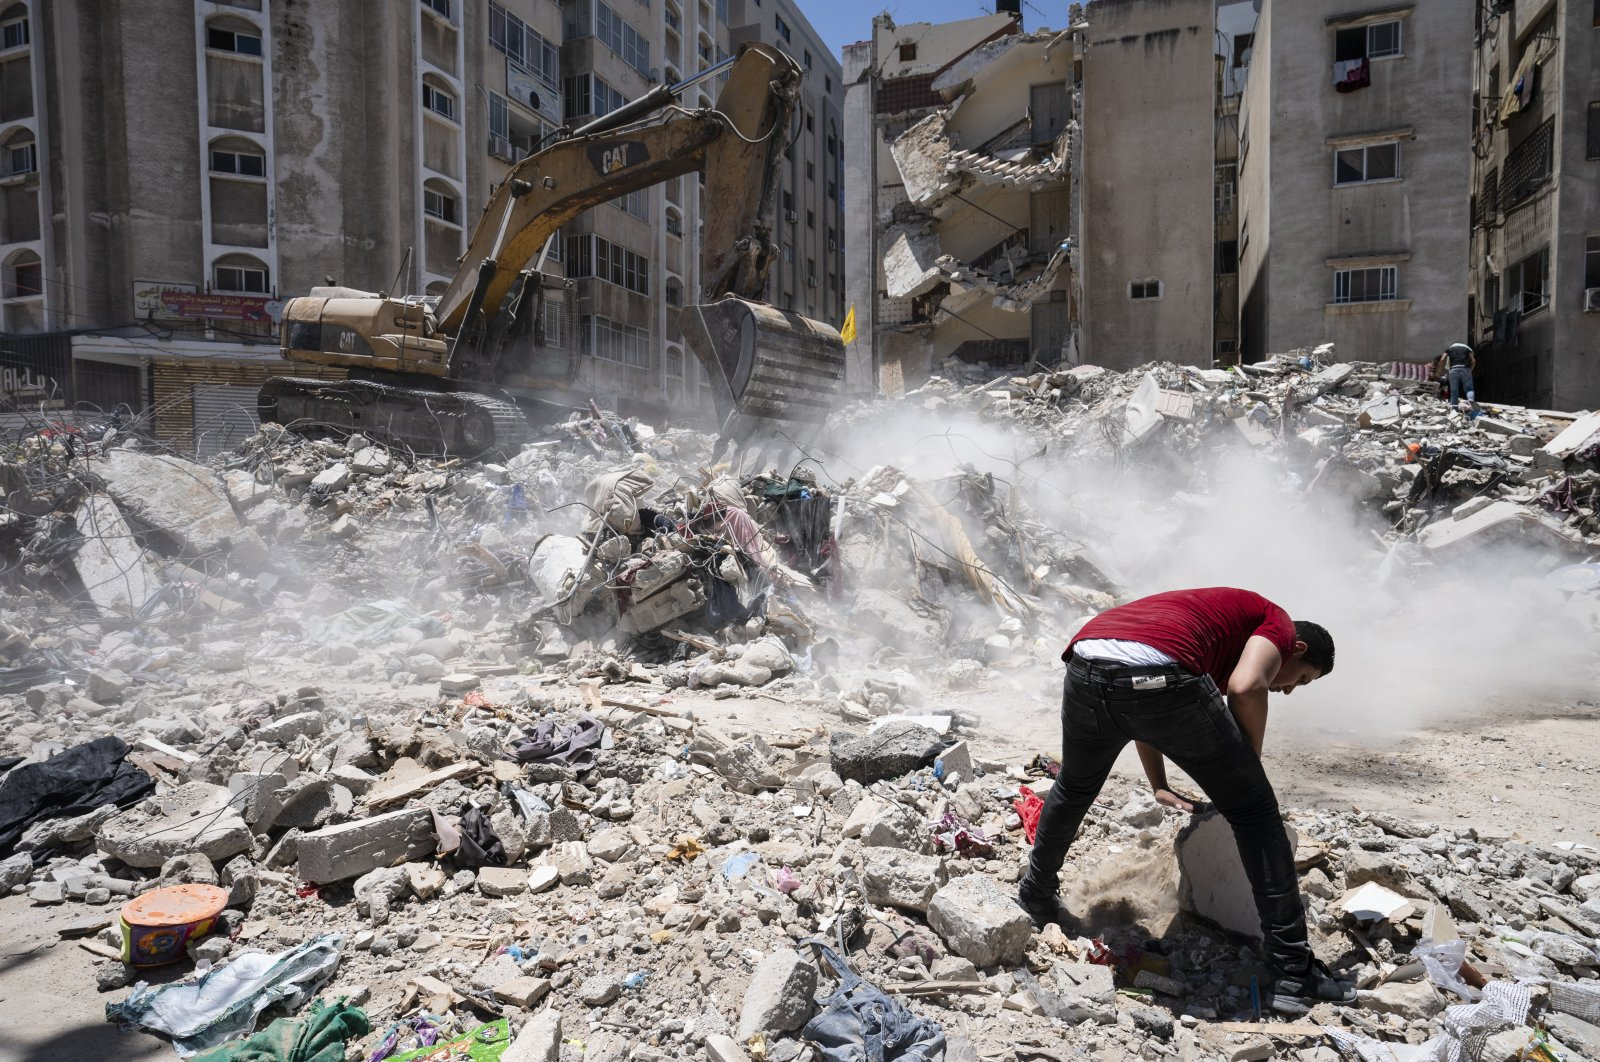 Heavy construction equipment is used to sift through the rubble to uncover valuables before it is transported away from the scene of a building destroyed in an airstrike prior to a cease-fire that halted an 11-day war between Gaza's Hamas rulers and Israel, Gaza City, May 27, 2021. (AP Photo/John Minchillo)